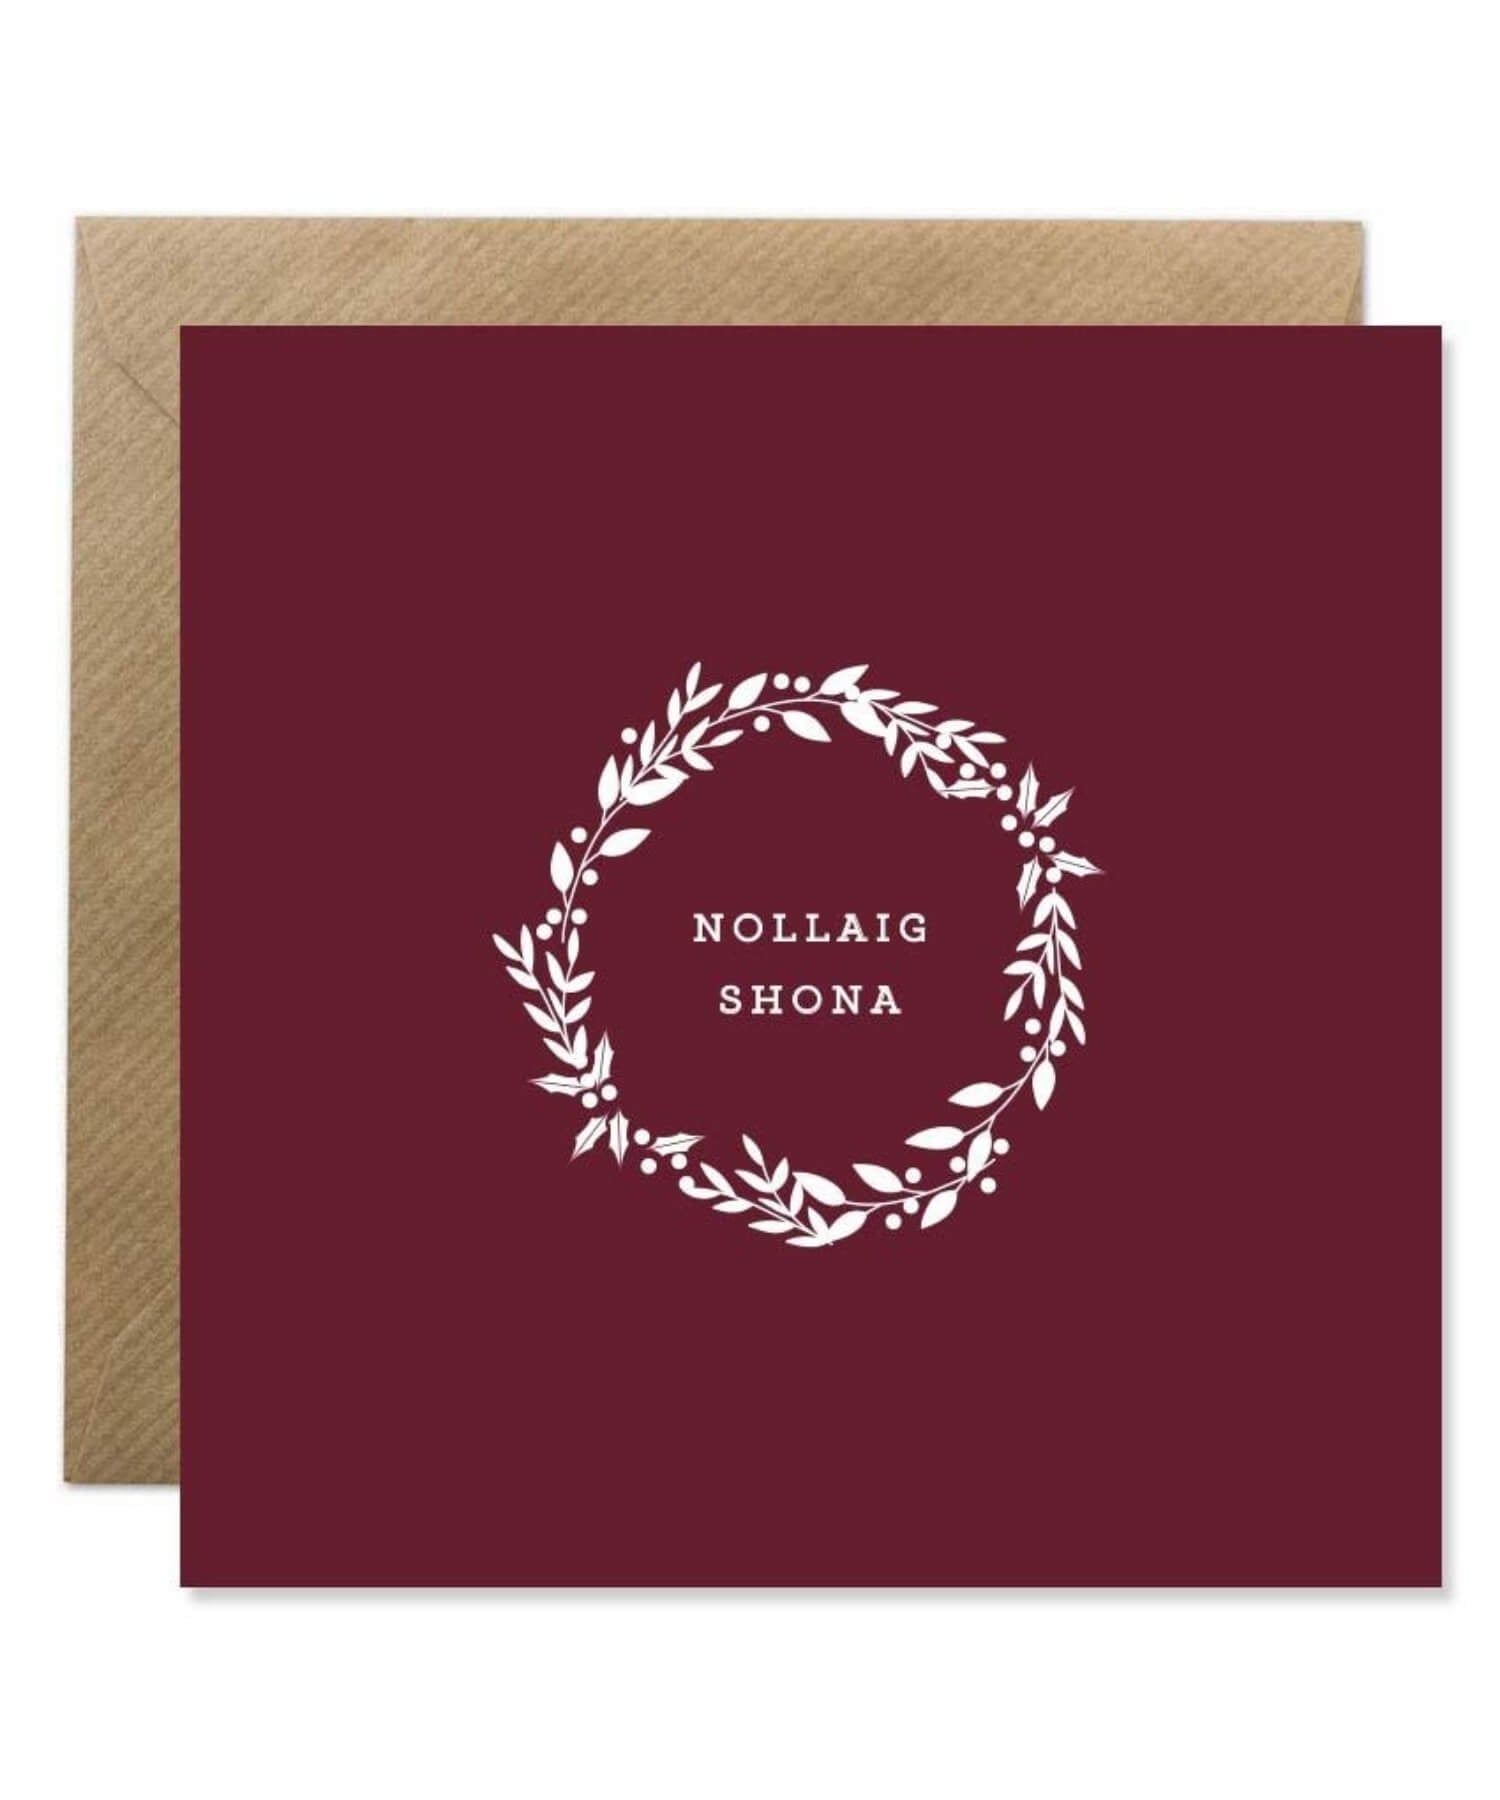 Greeting Card - Nollaig Shona - Wreath - [Bold Bunny] - Greeting Cards - Irish Gifts